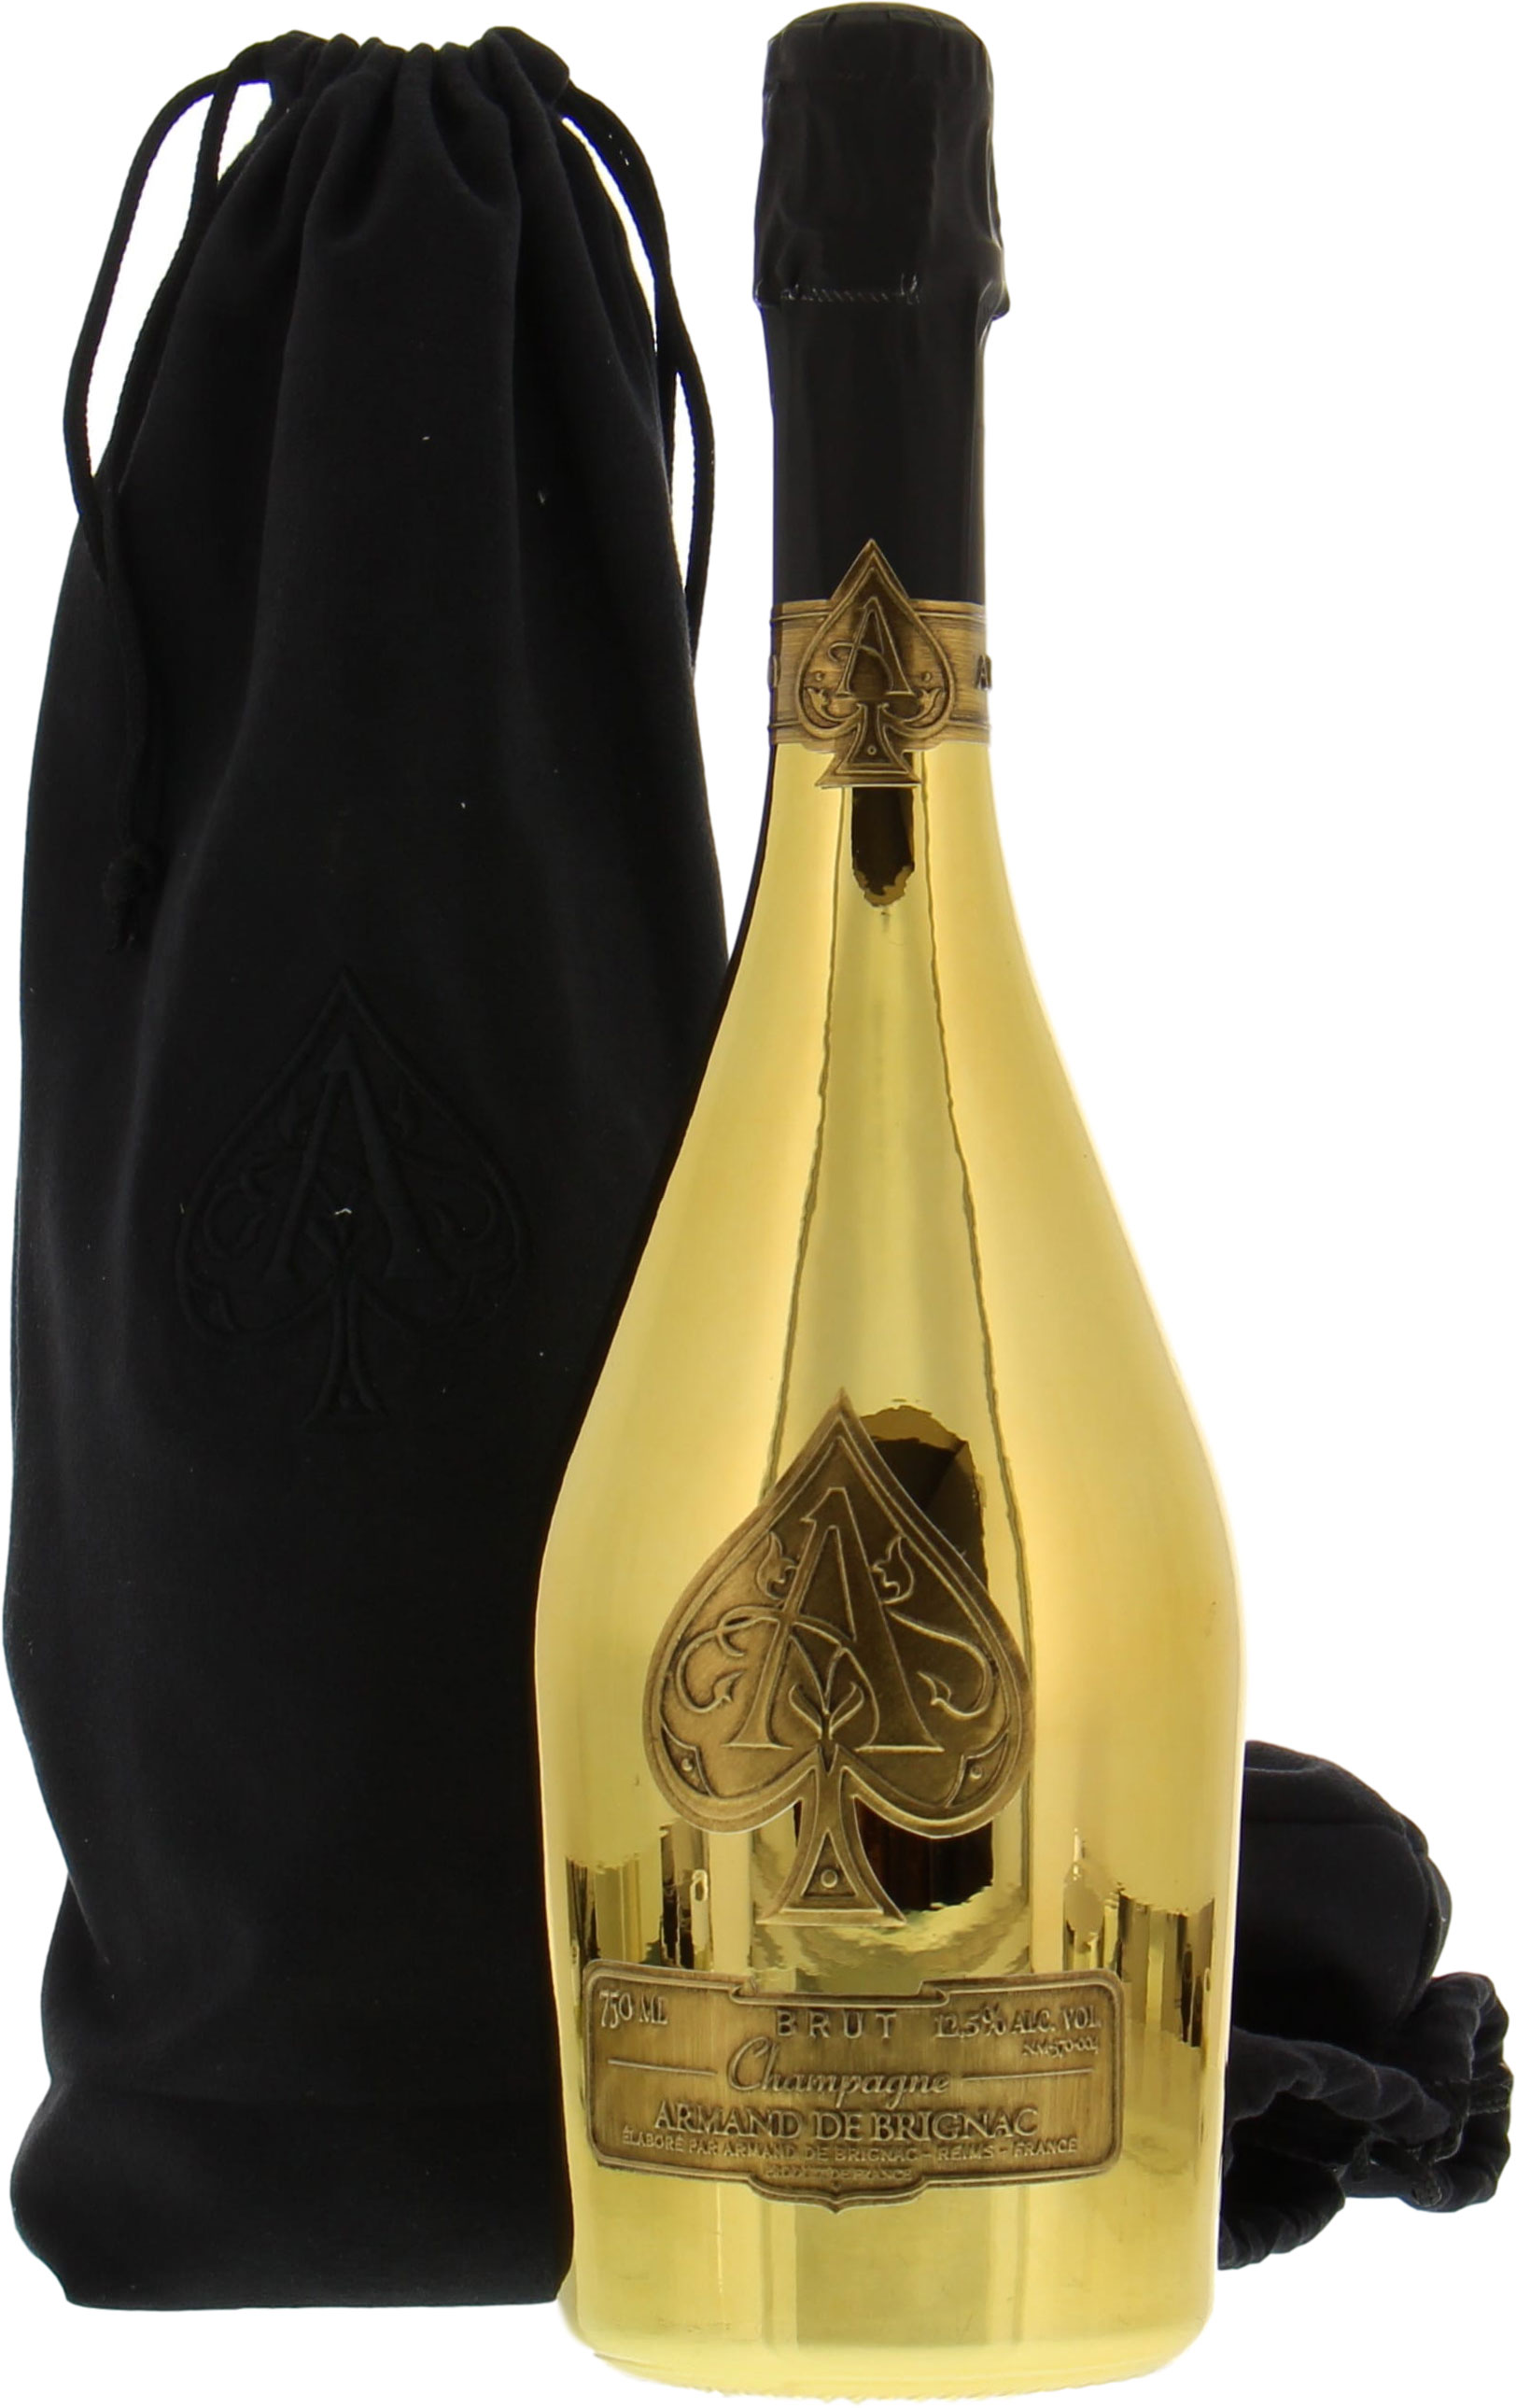 Armand de Brignac - Gold Brut in bag